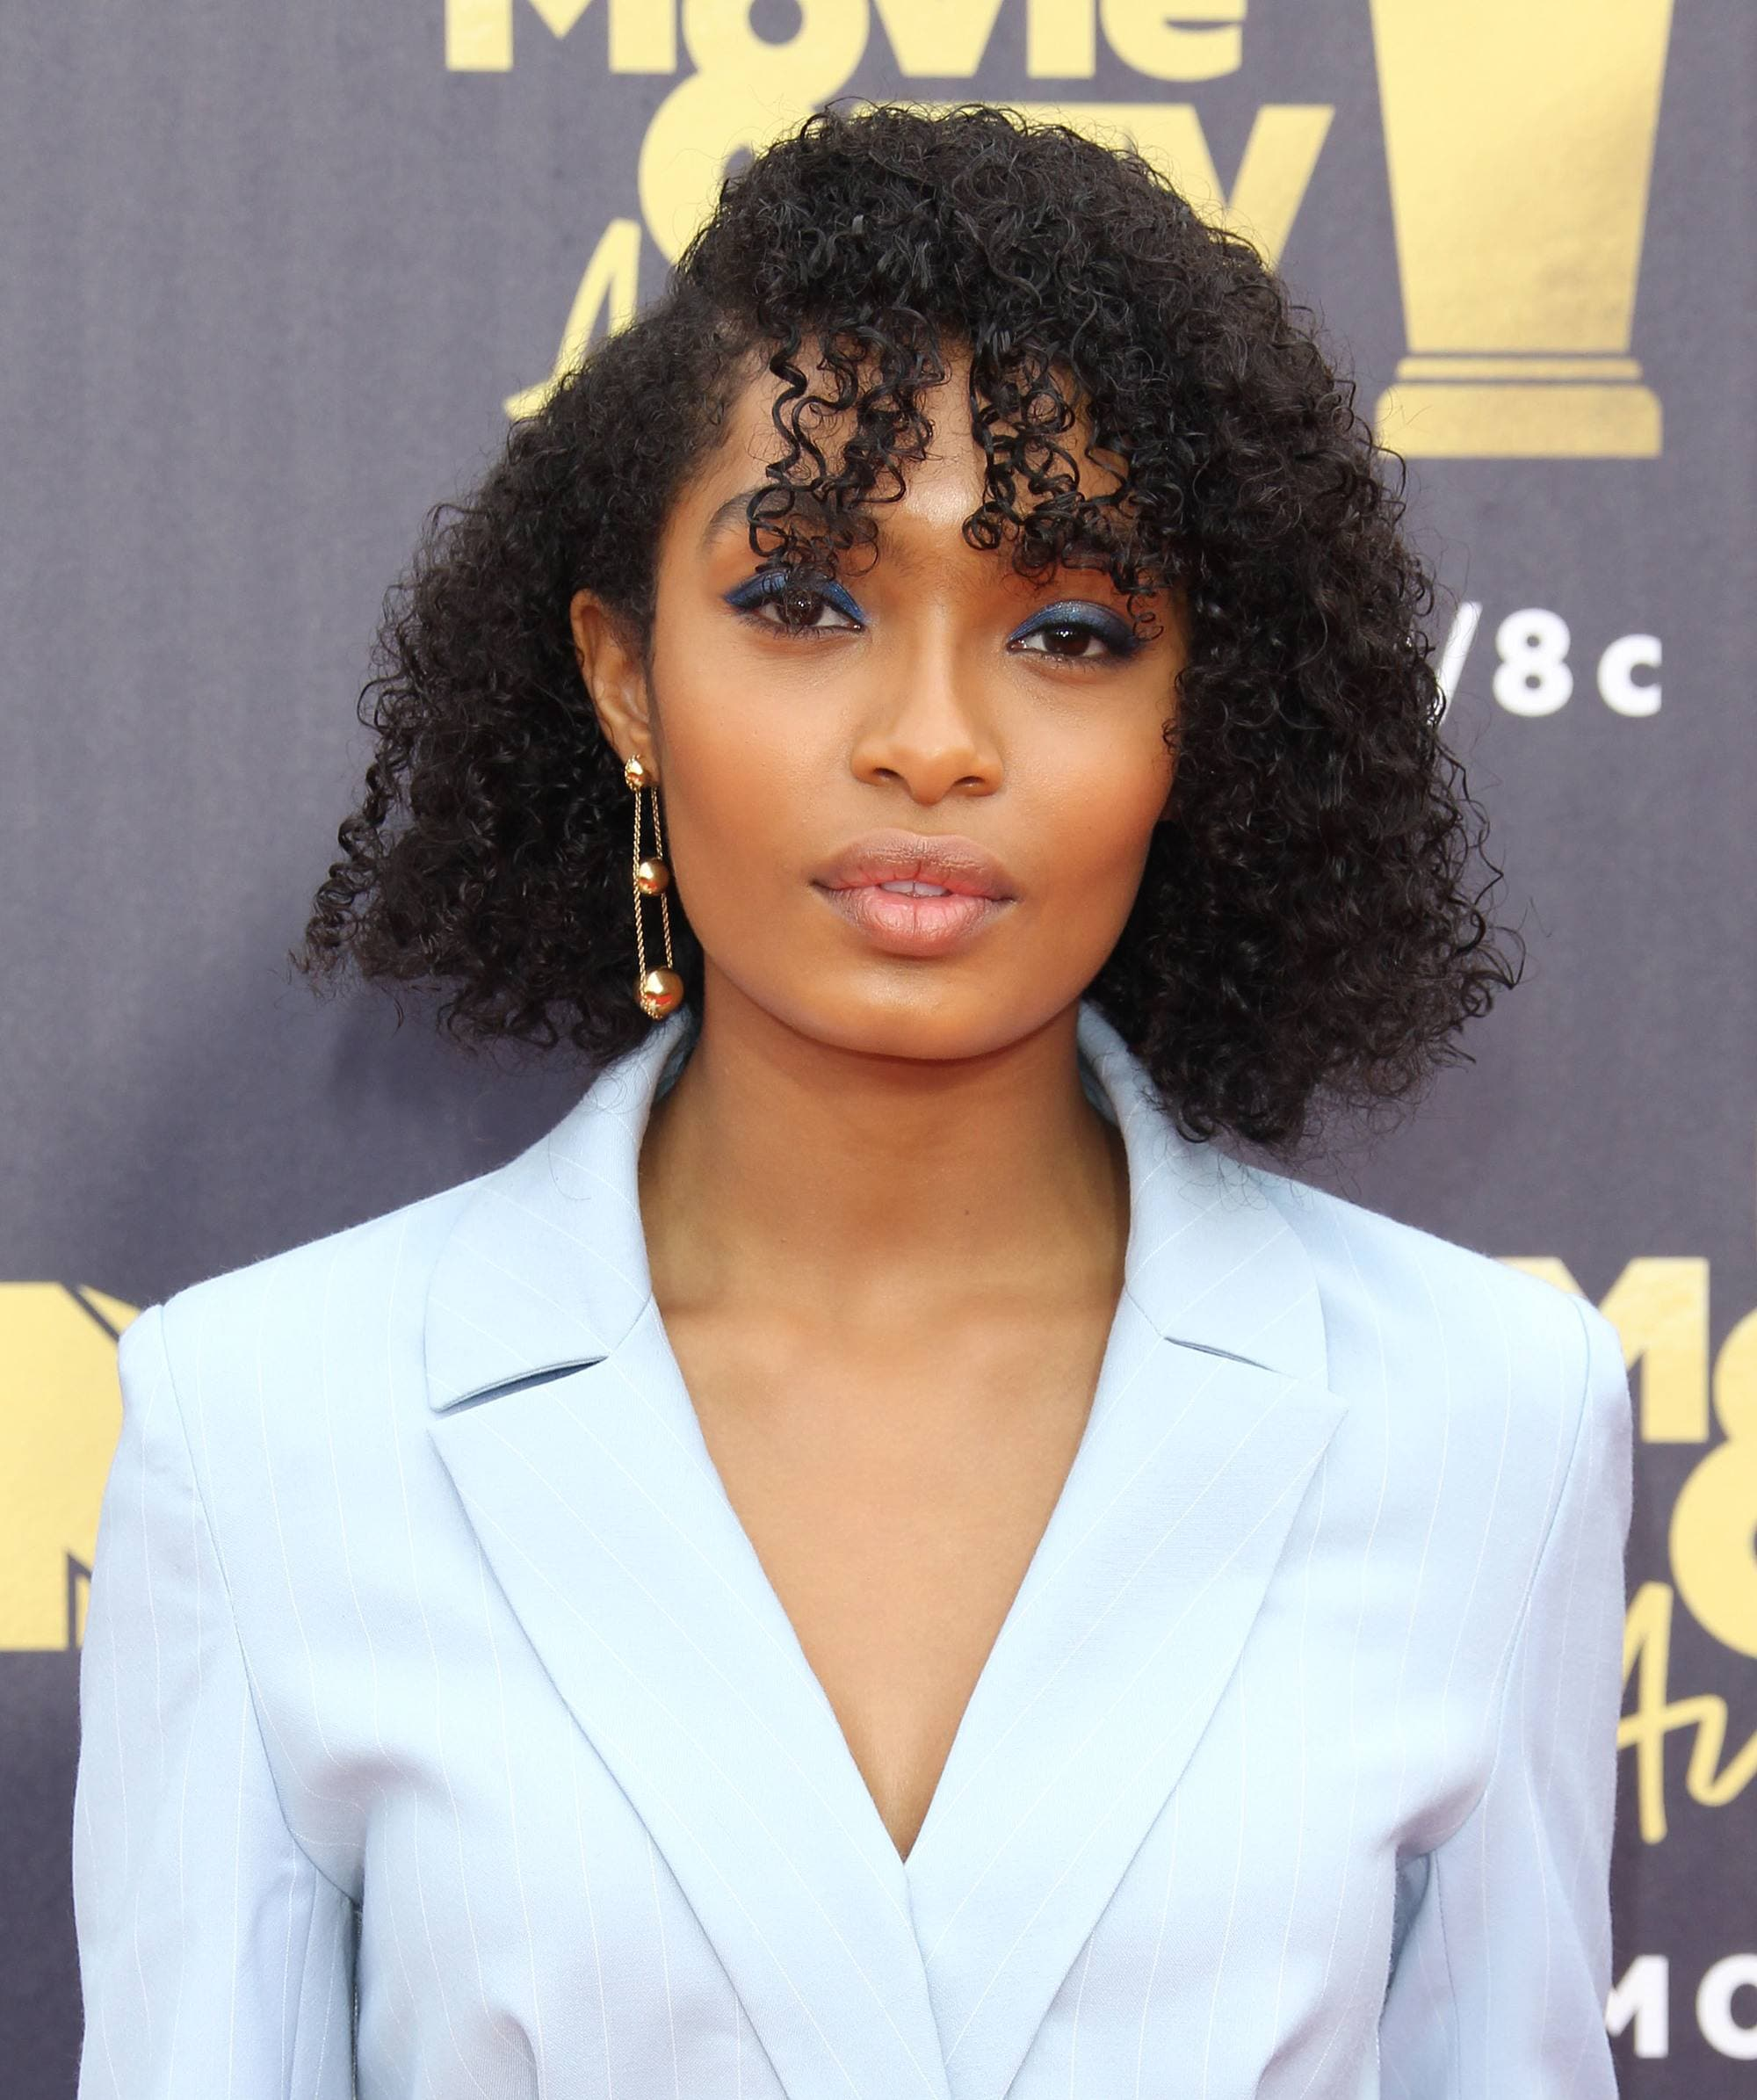 Yara Shahidi on the red carpet with a dark brown short curly bob cut